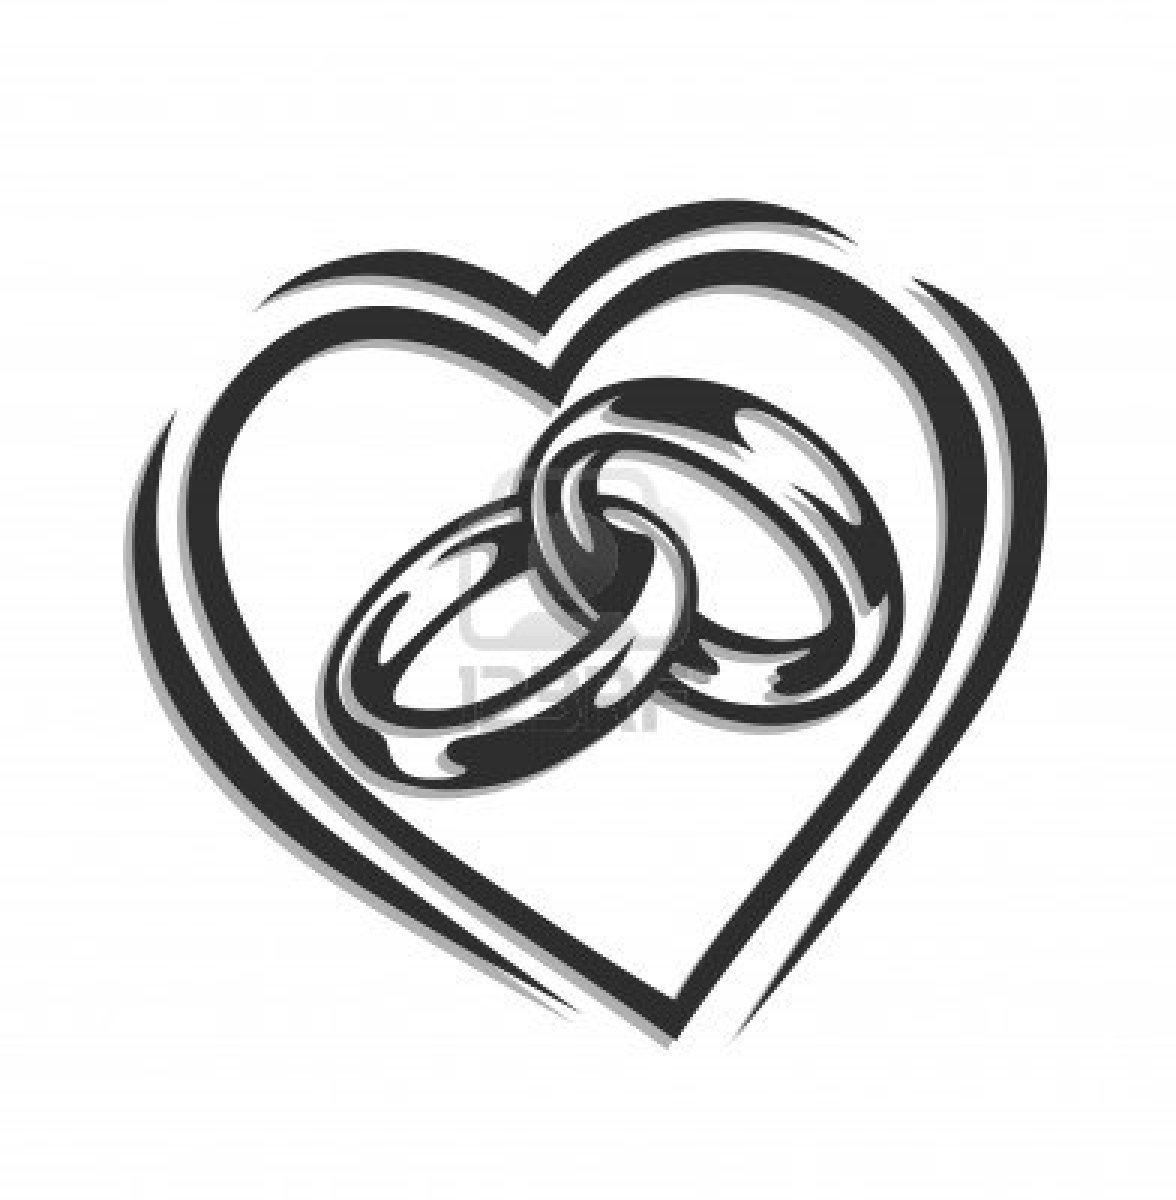 linked wedding rings clipart-linked wedding rings clipart-5